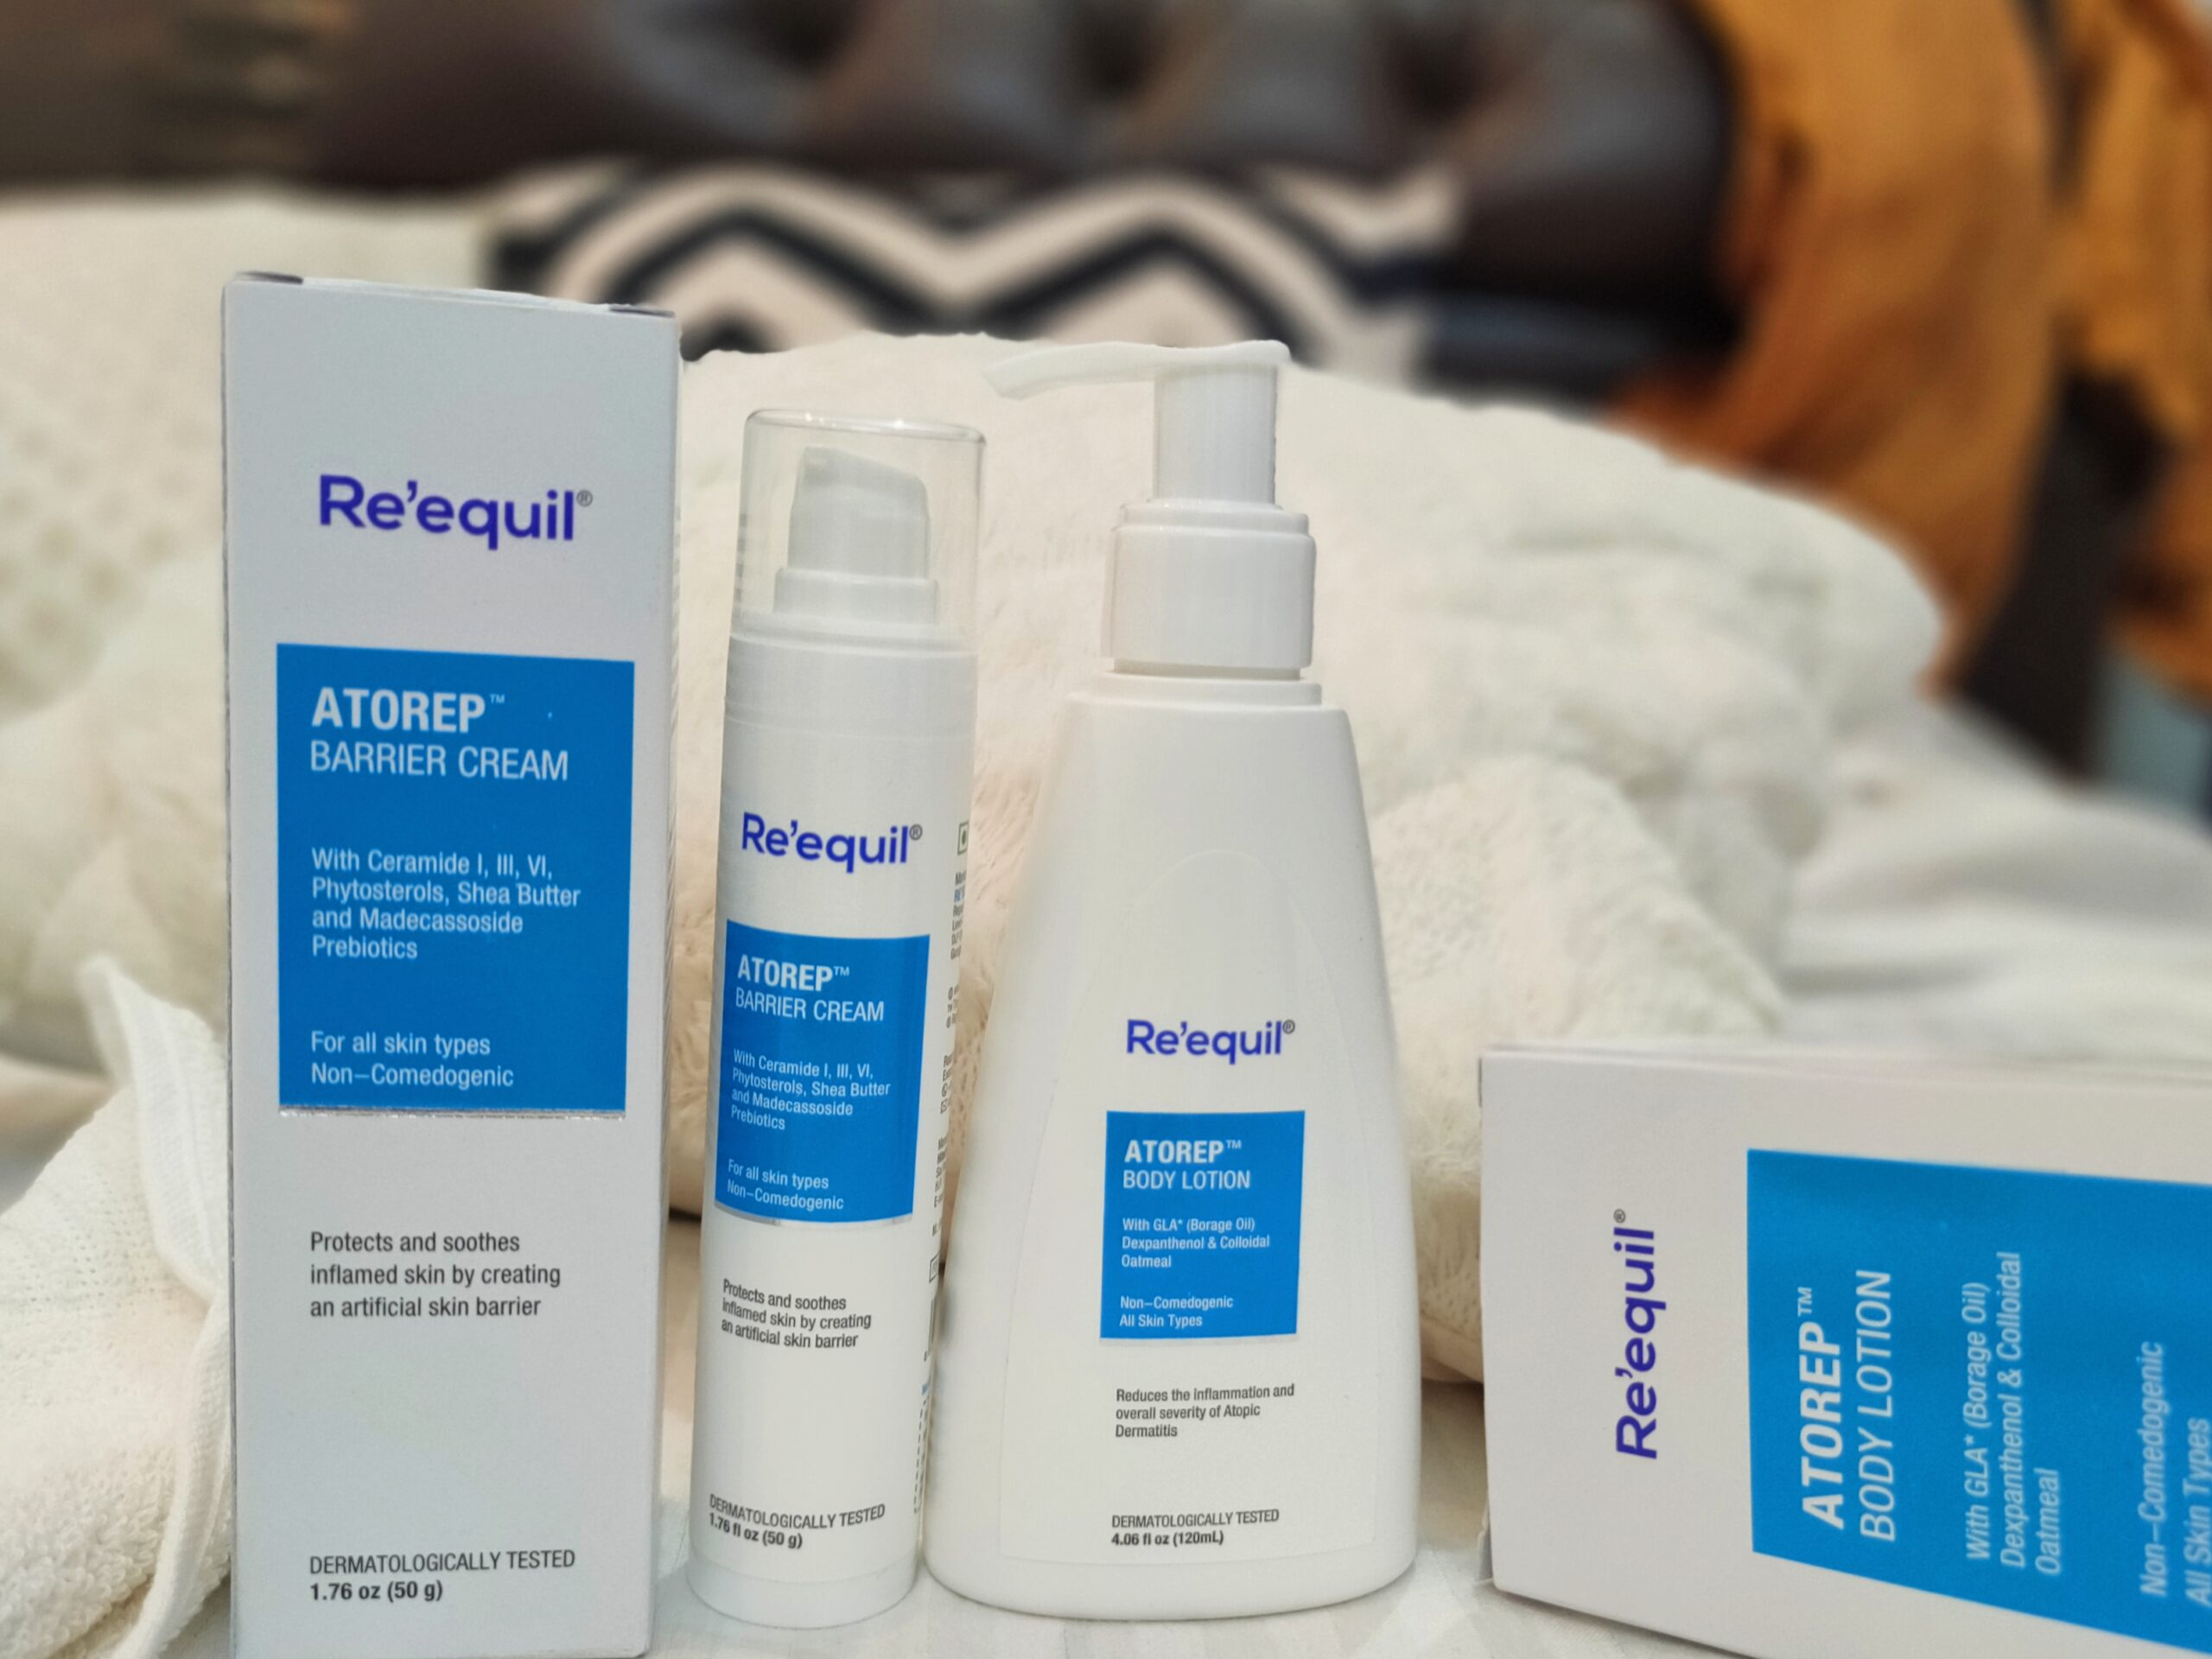 Re'equil Atorep Body Lotion and Barrier Cream Review